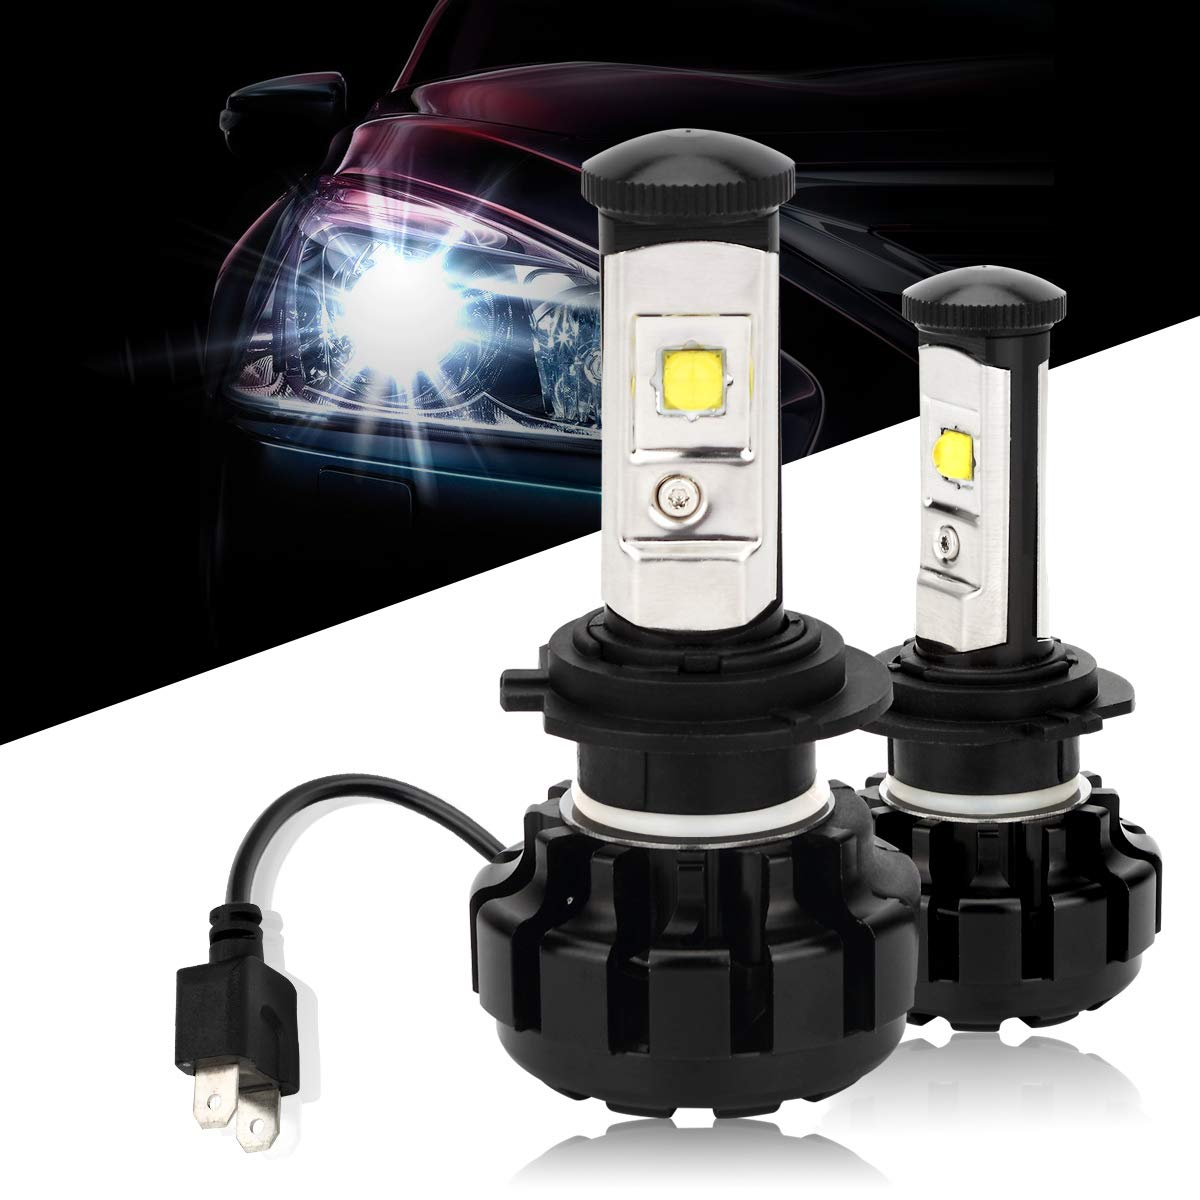 Amazon.com: Green-L 9600 Lumens Extremely Bright High Power H7 All-in-One LED Headlight Bulbs Conversion Kit, 6000K Cool White: Automotive